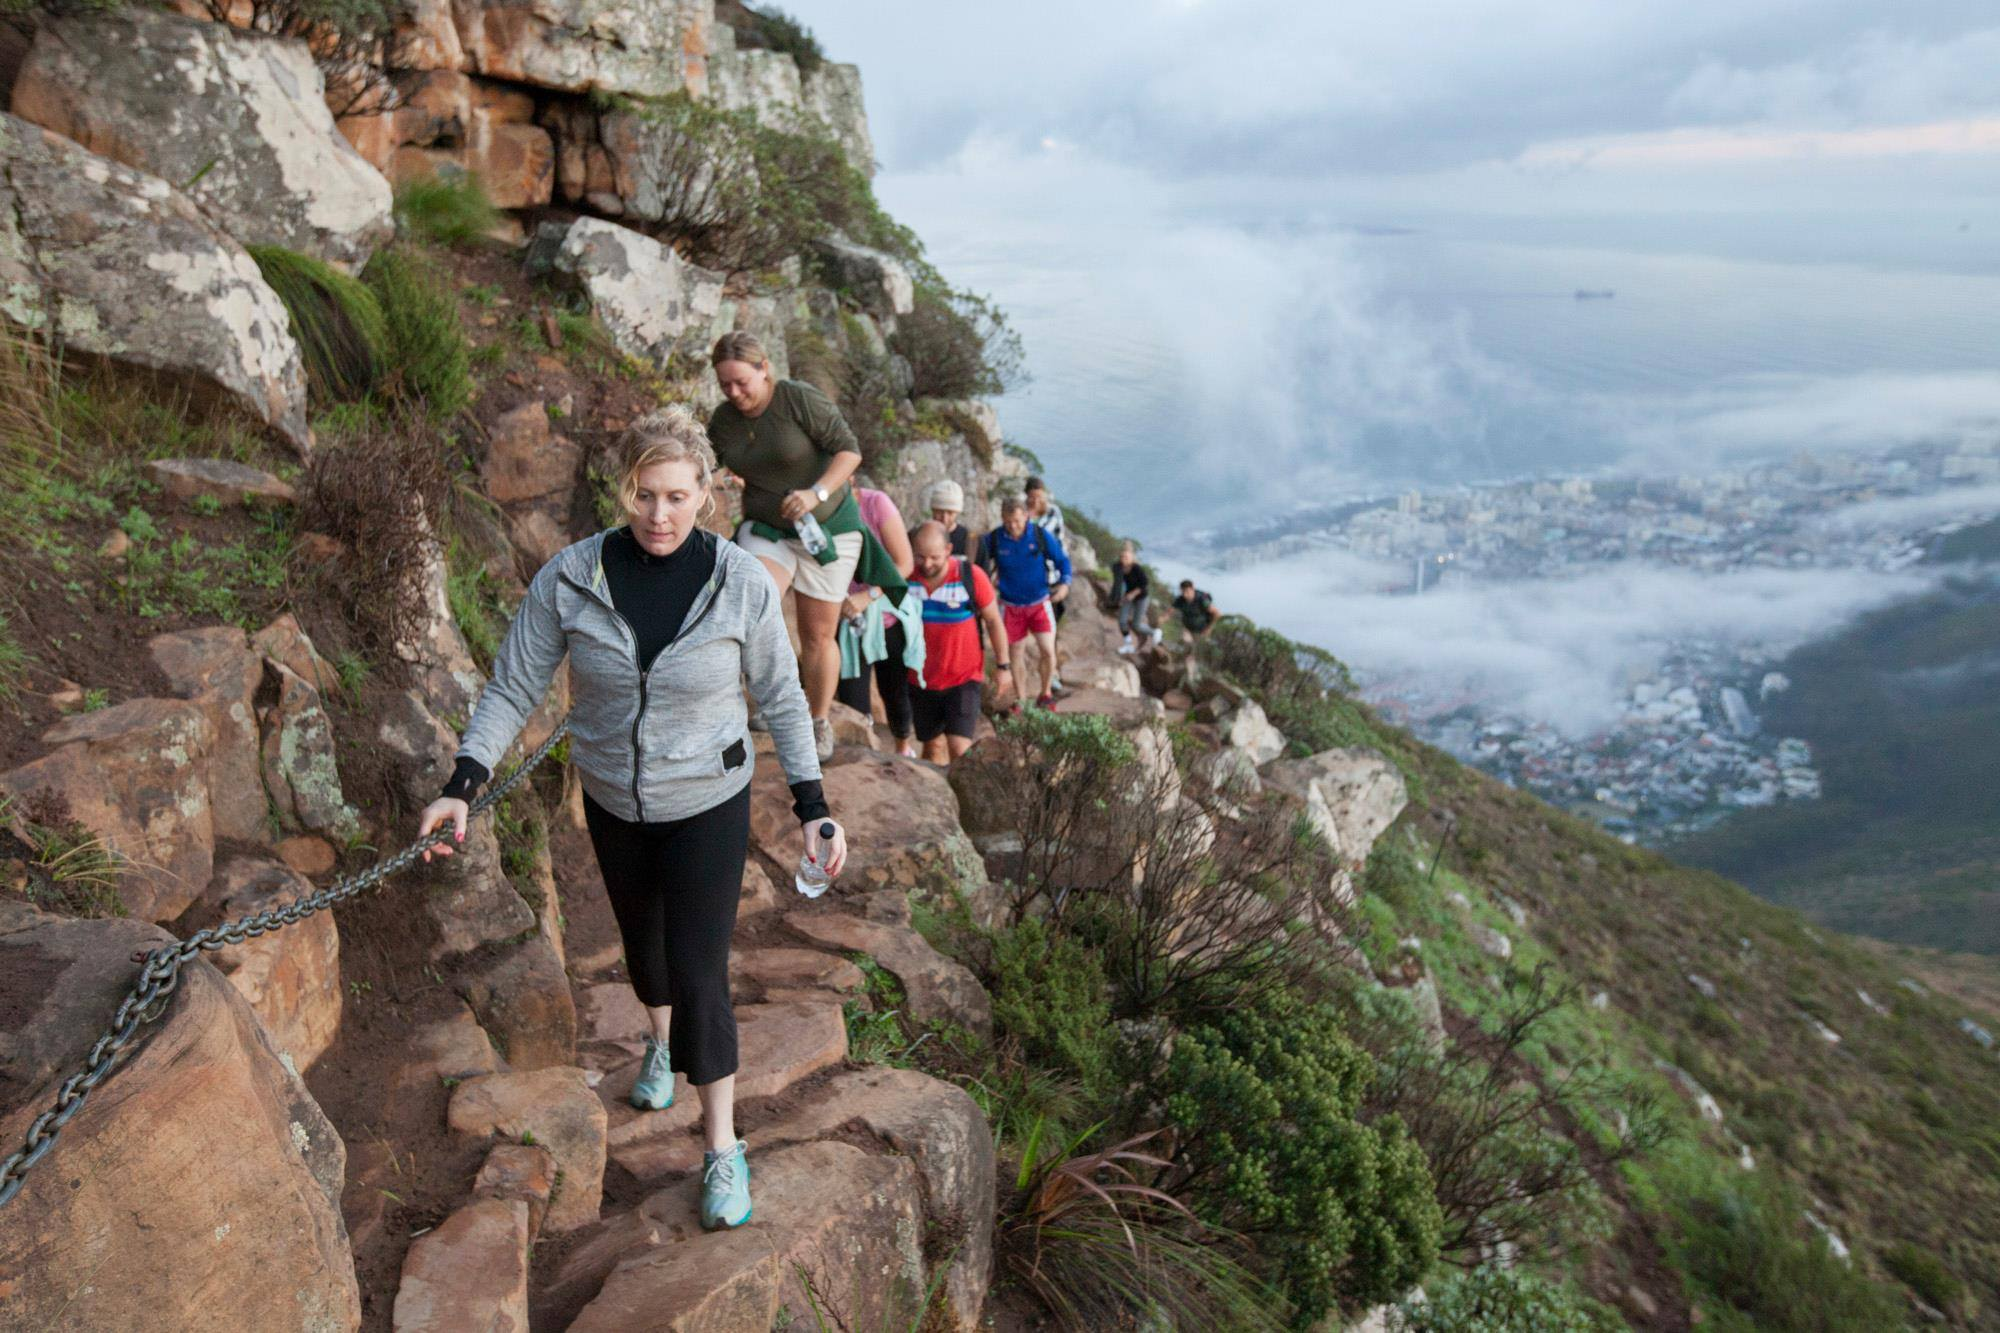 Hikers along one of Cape Town's mountain steep paths